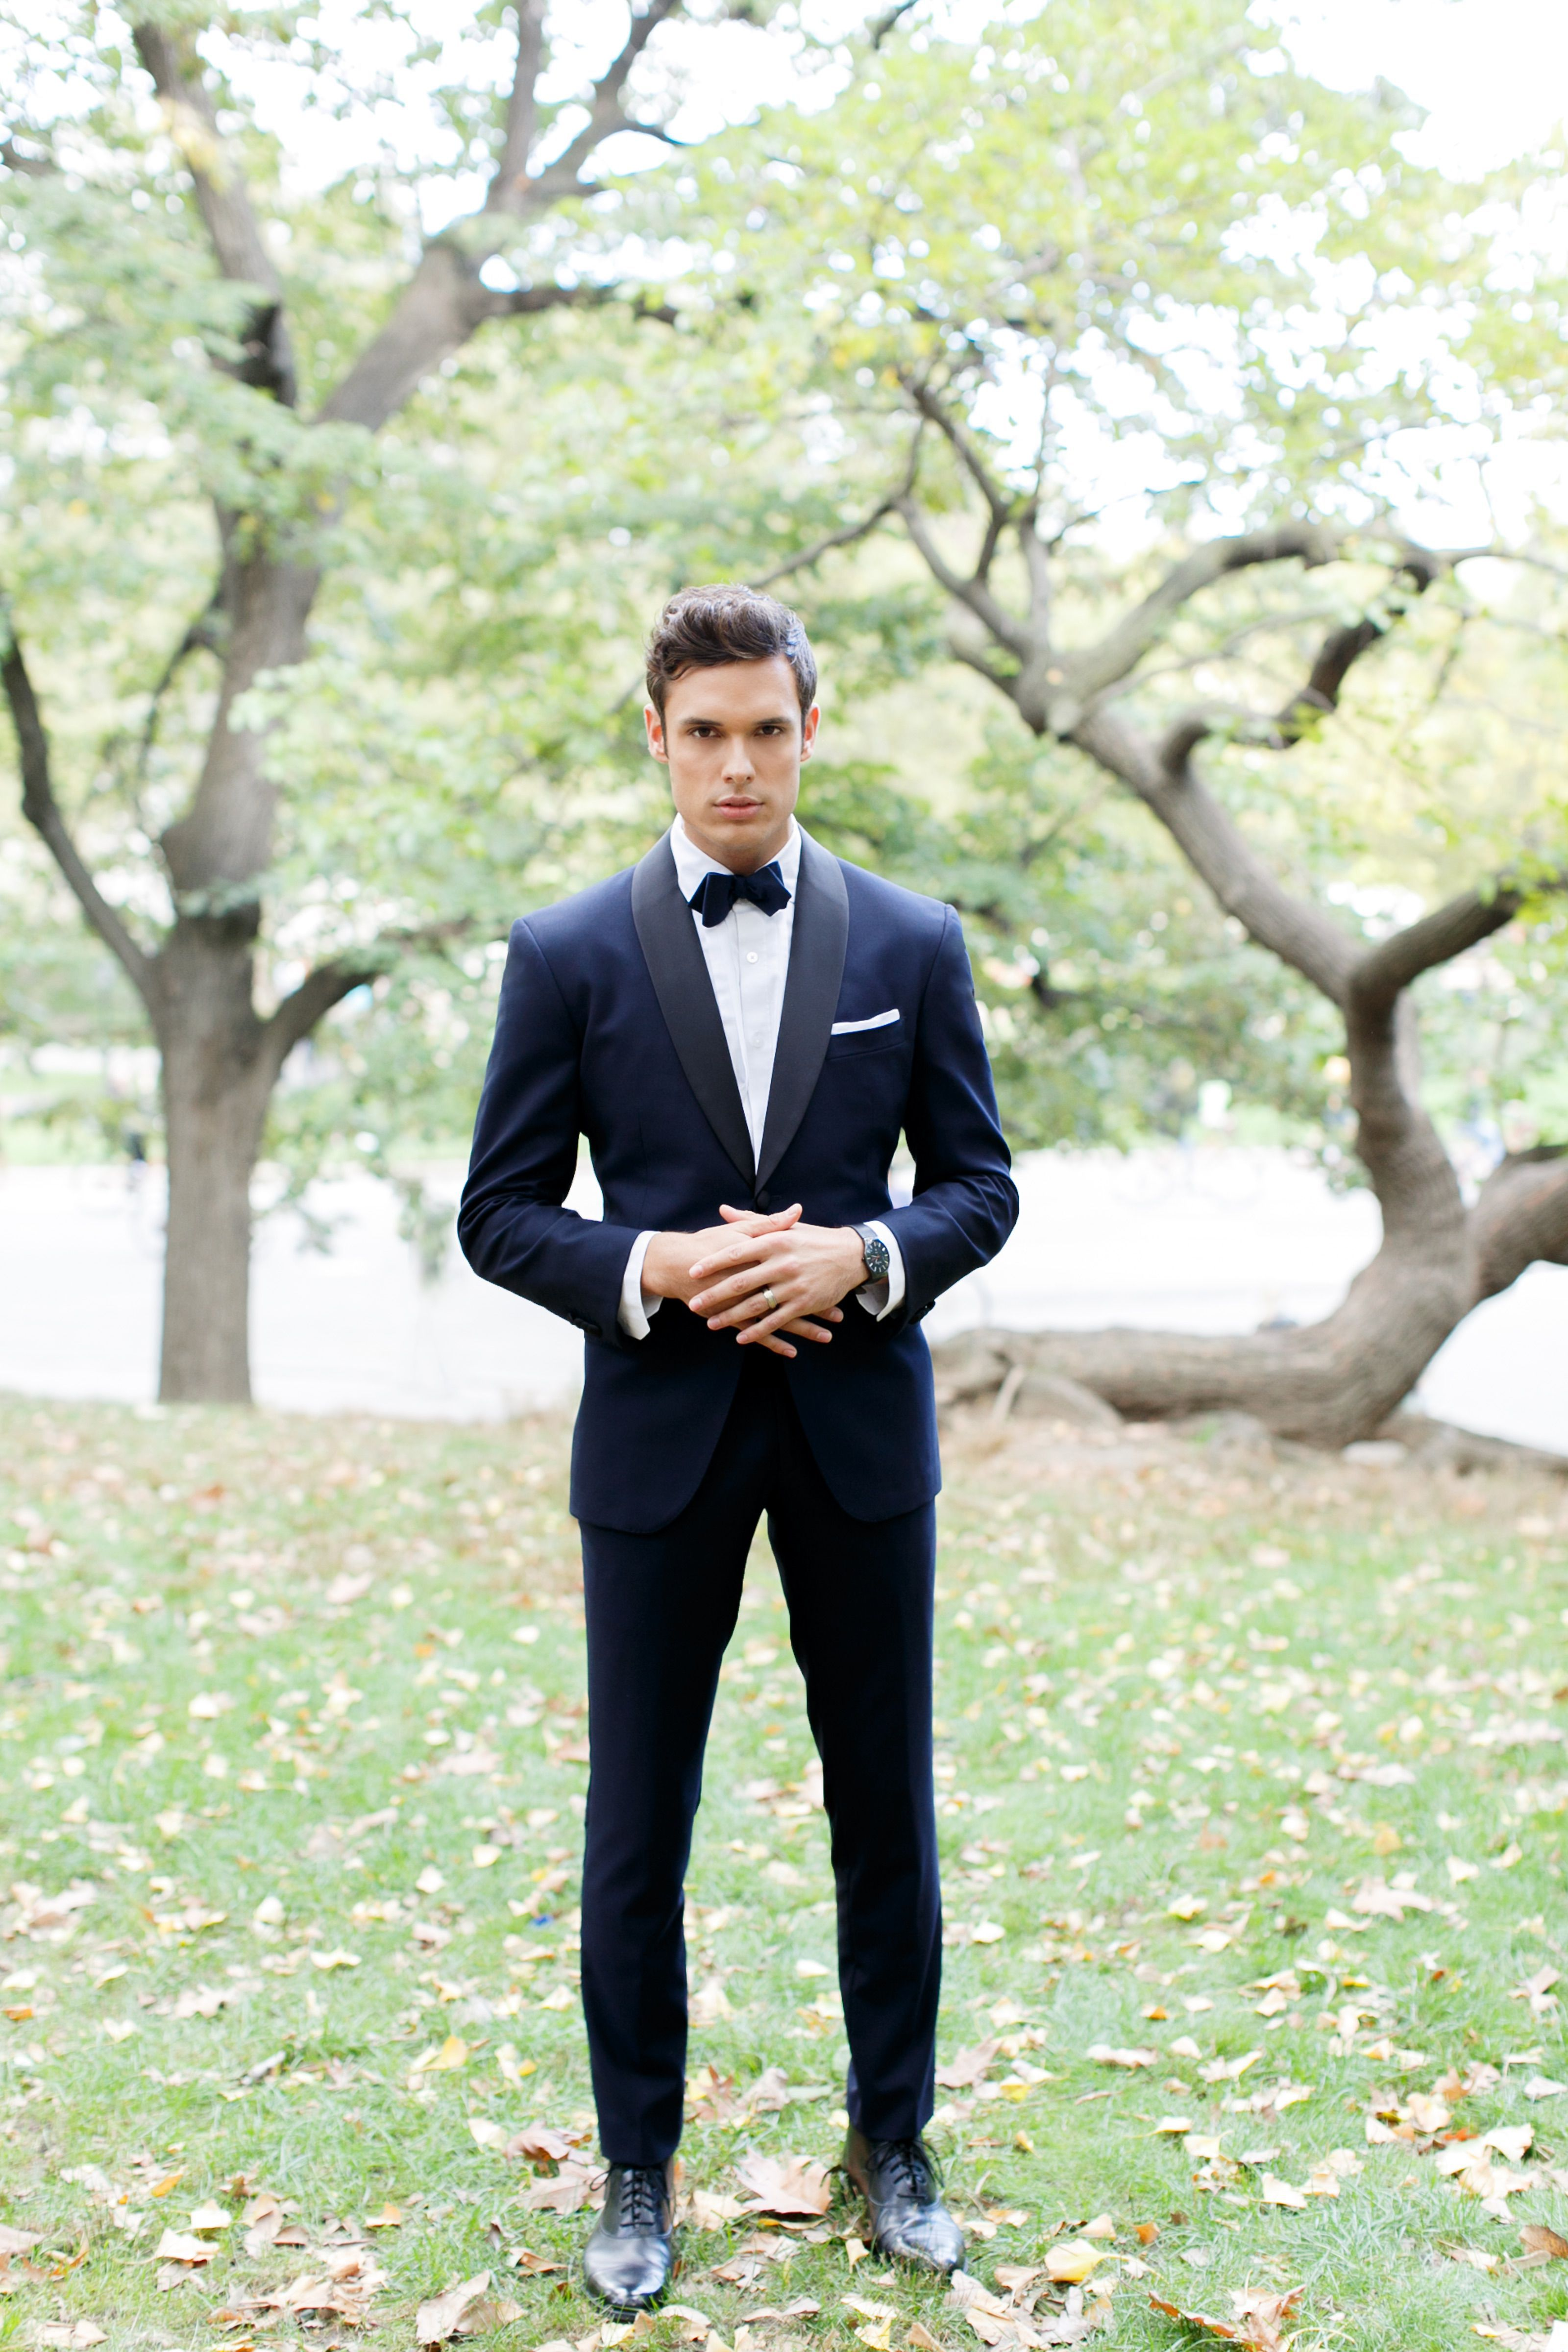 Make room for the groom a stylistus guide to wedding fashion